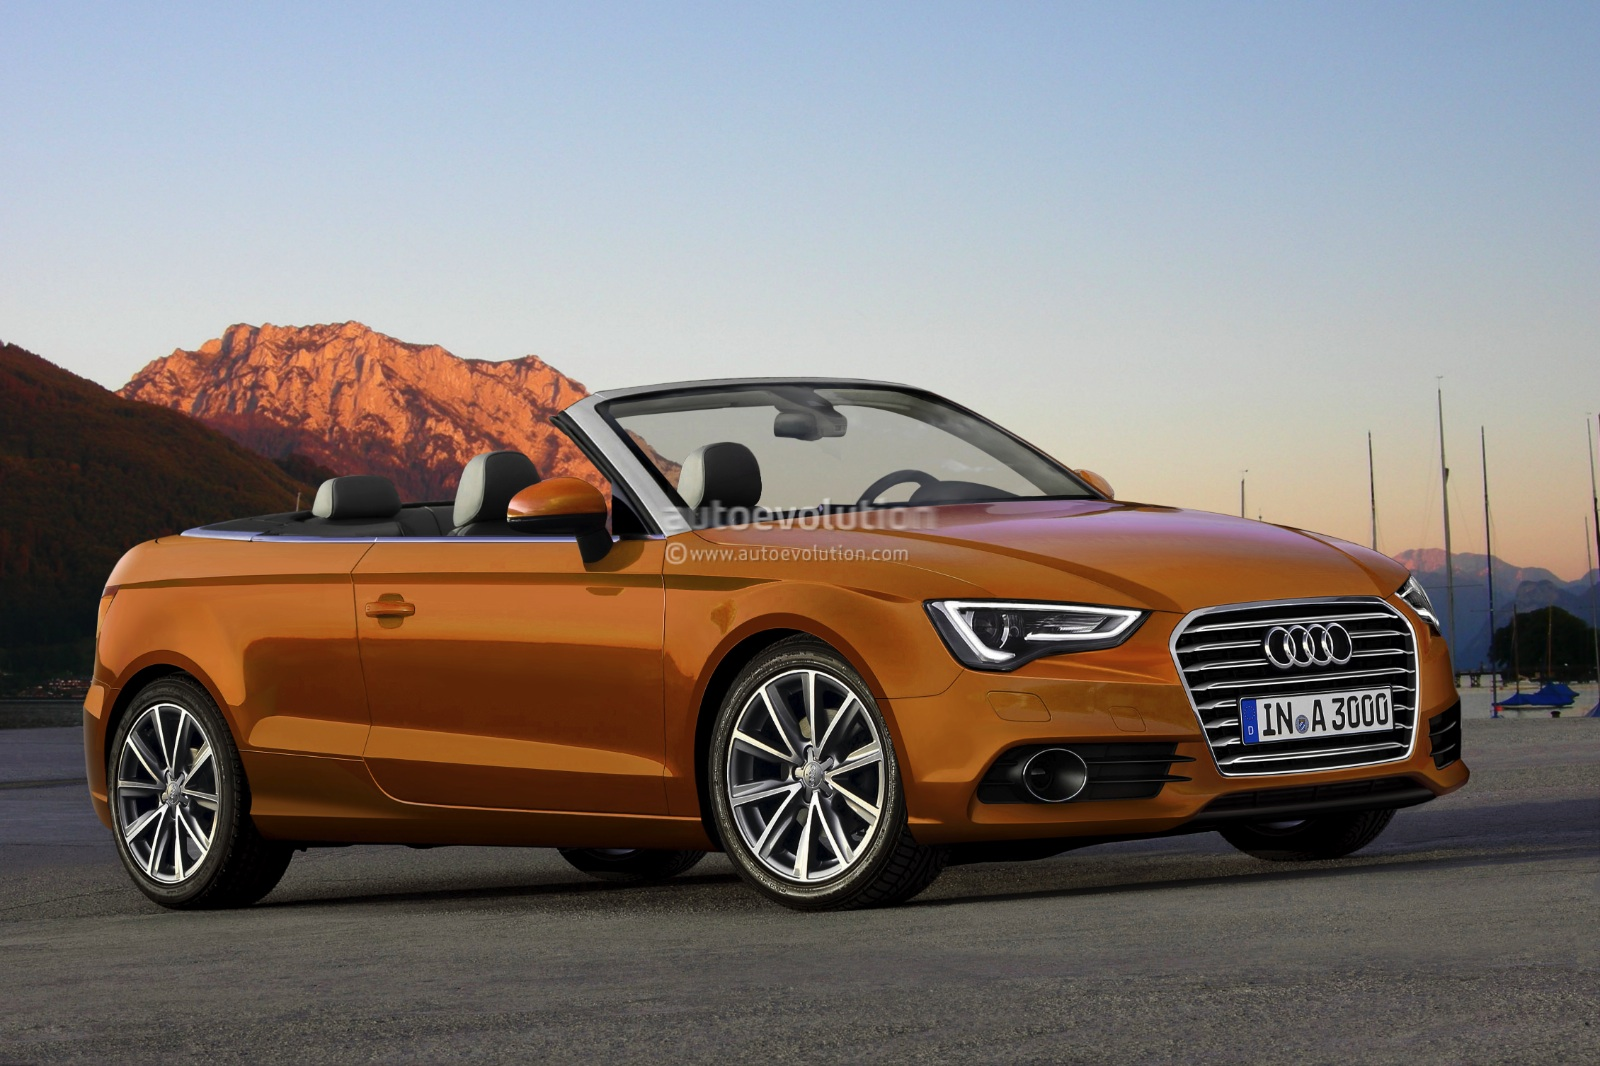 2012 audi a3 cabriolet rendering autoevolution. Black Bedroom Furniture Sets. Home Design Ideas